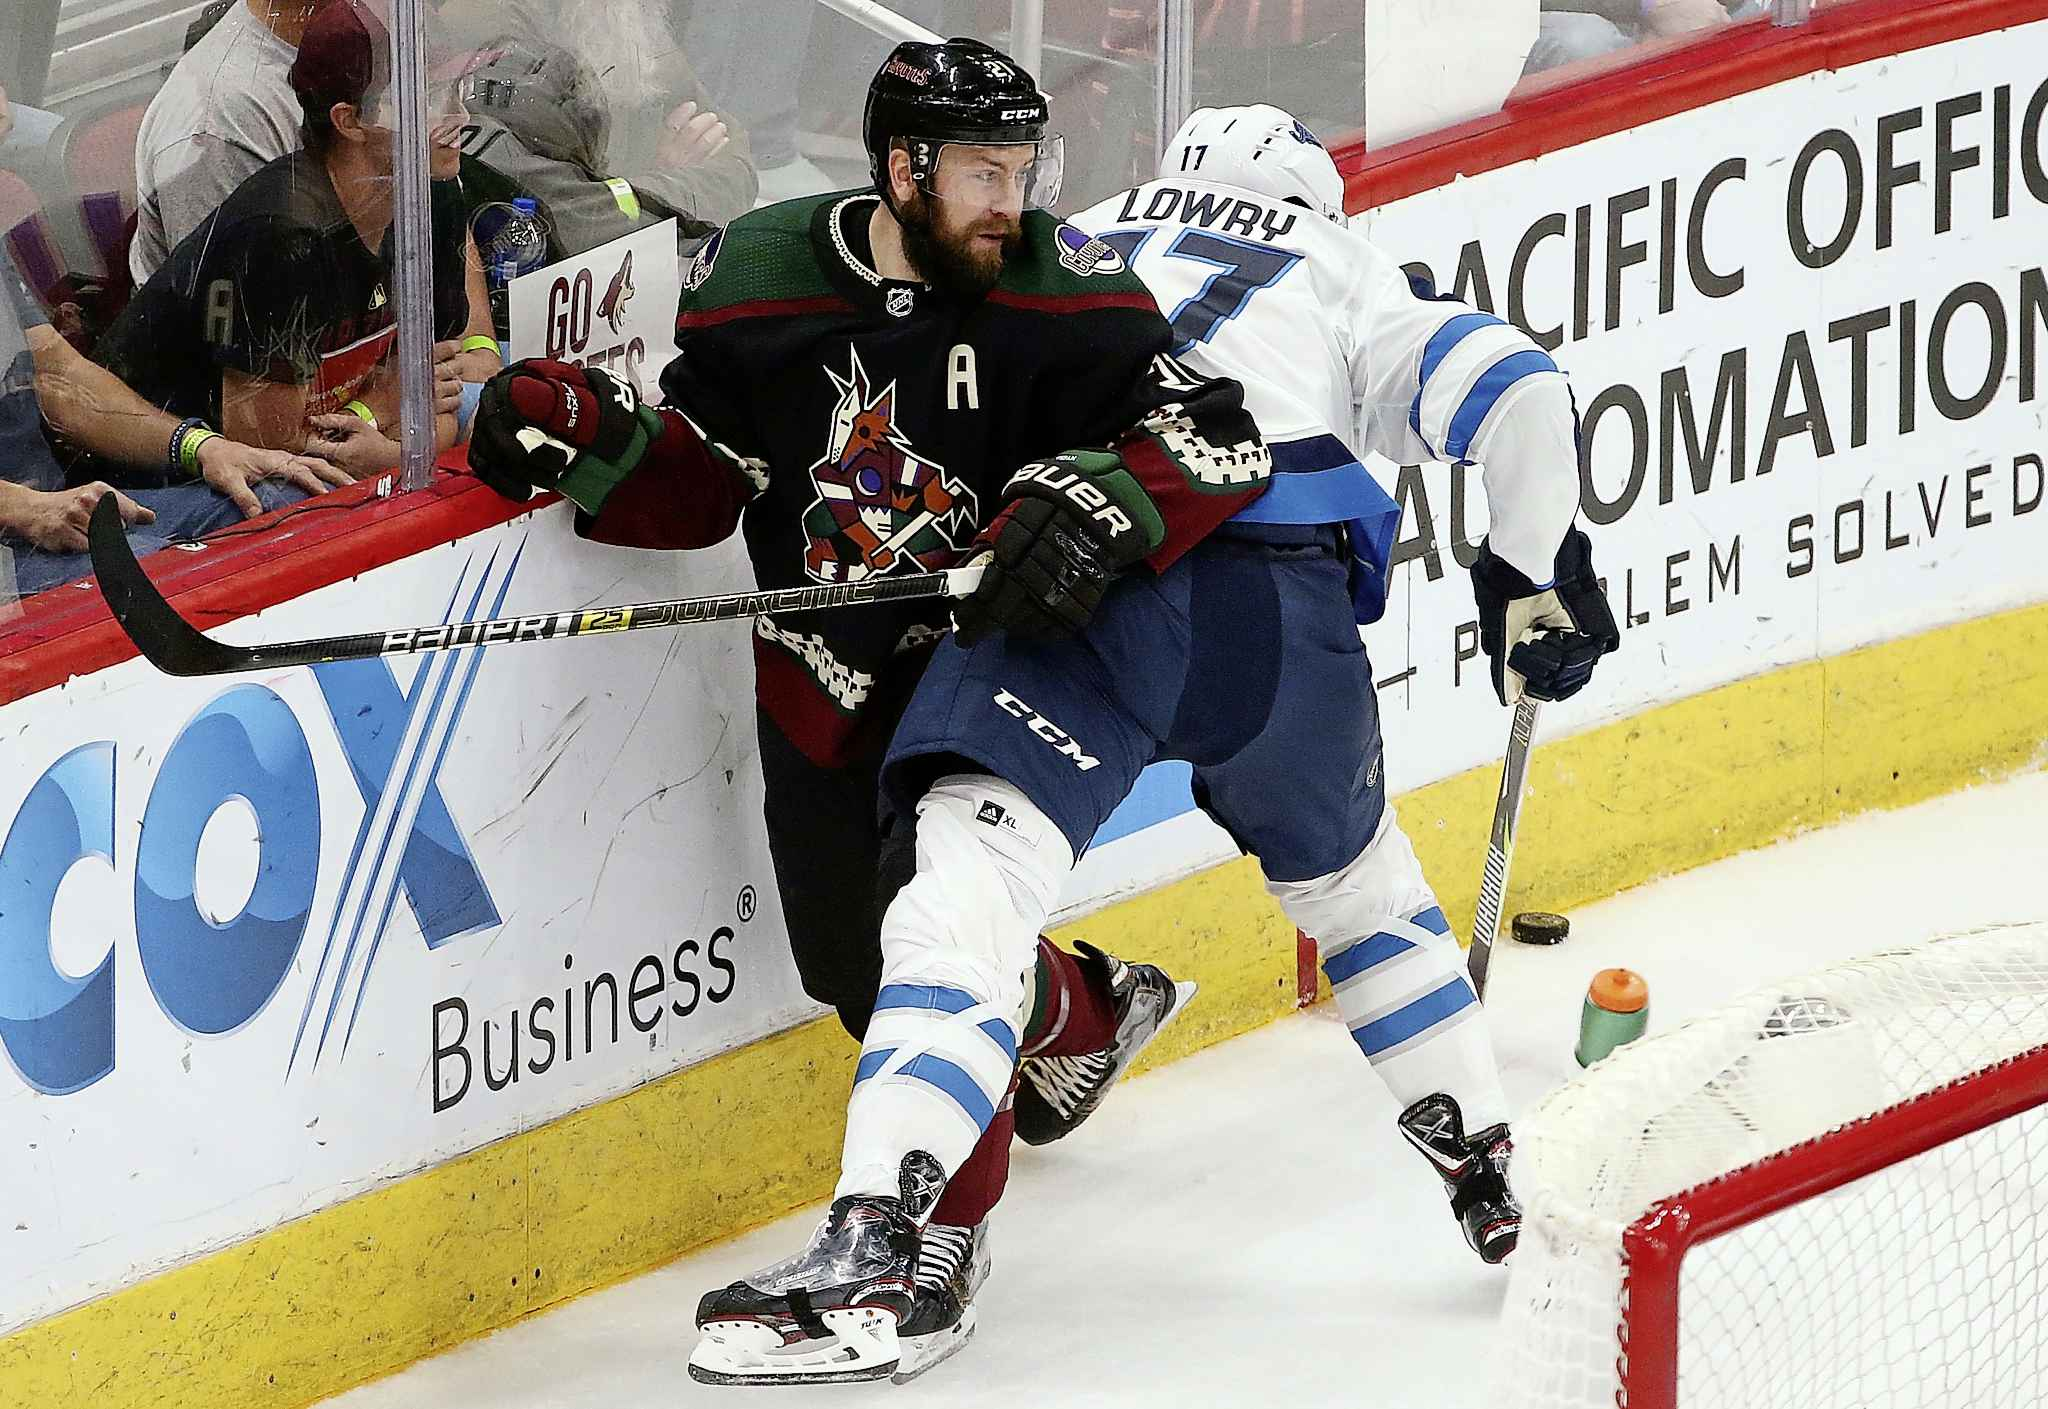 Arizona Coyotes center Derek Stepan (21) tangles with Winnipeg Jets center Adam Lowry, right, as they both go for the puck during the second period of an NHL hockey game Saturday, April 6, 2019, in Glendale, Ariz. (AP Photo/Ross D. Franklin)